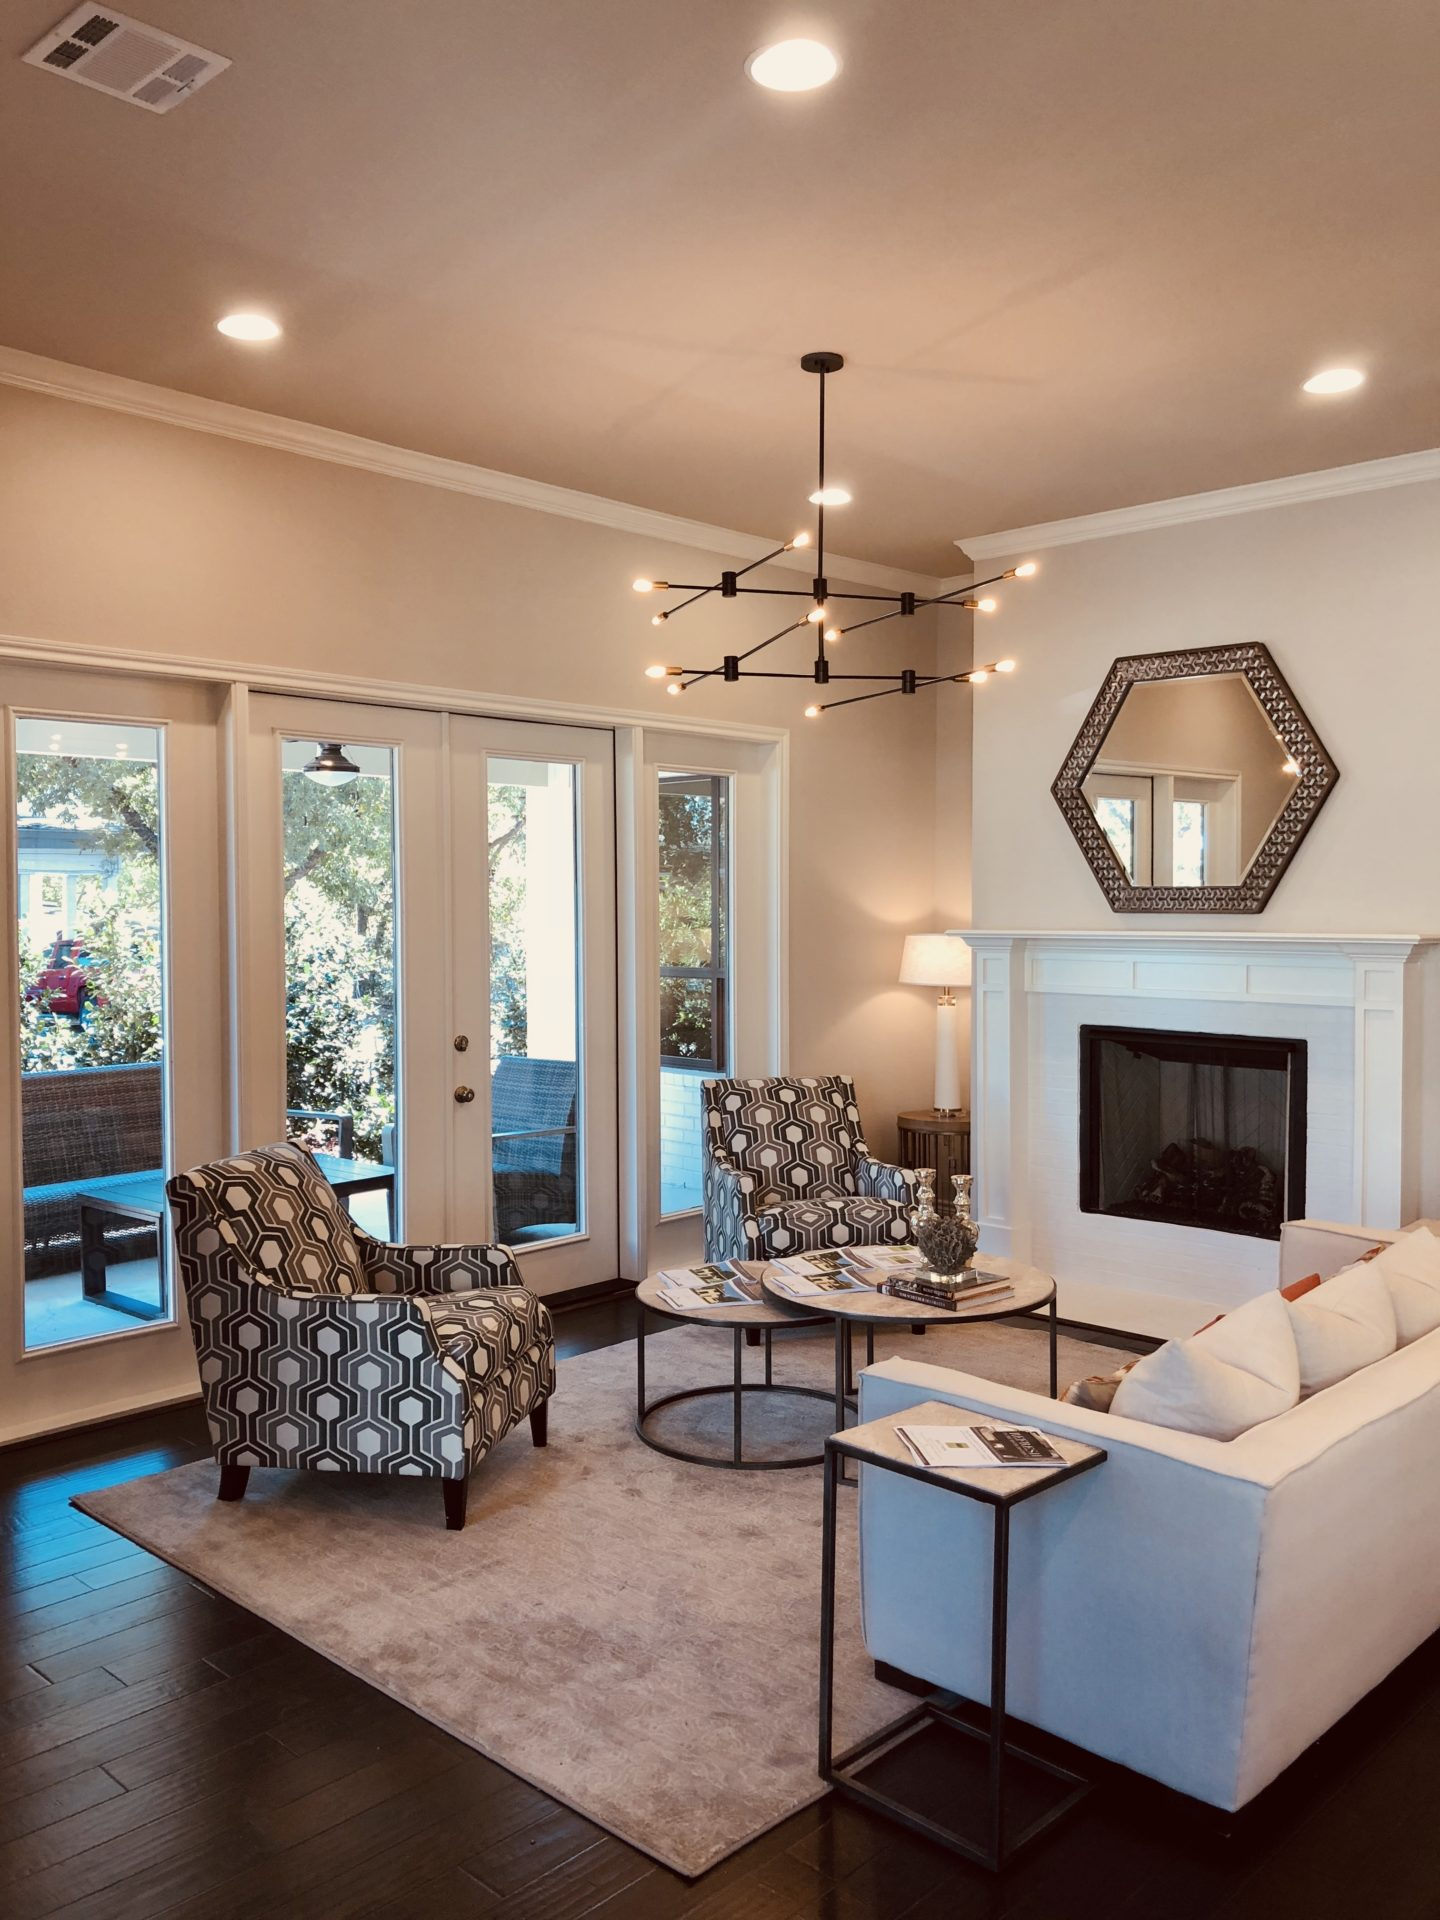 Interior view of a living room with a white fireplace, blue patterened chairs, and a clear door to the outside patio